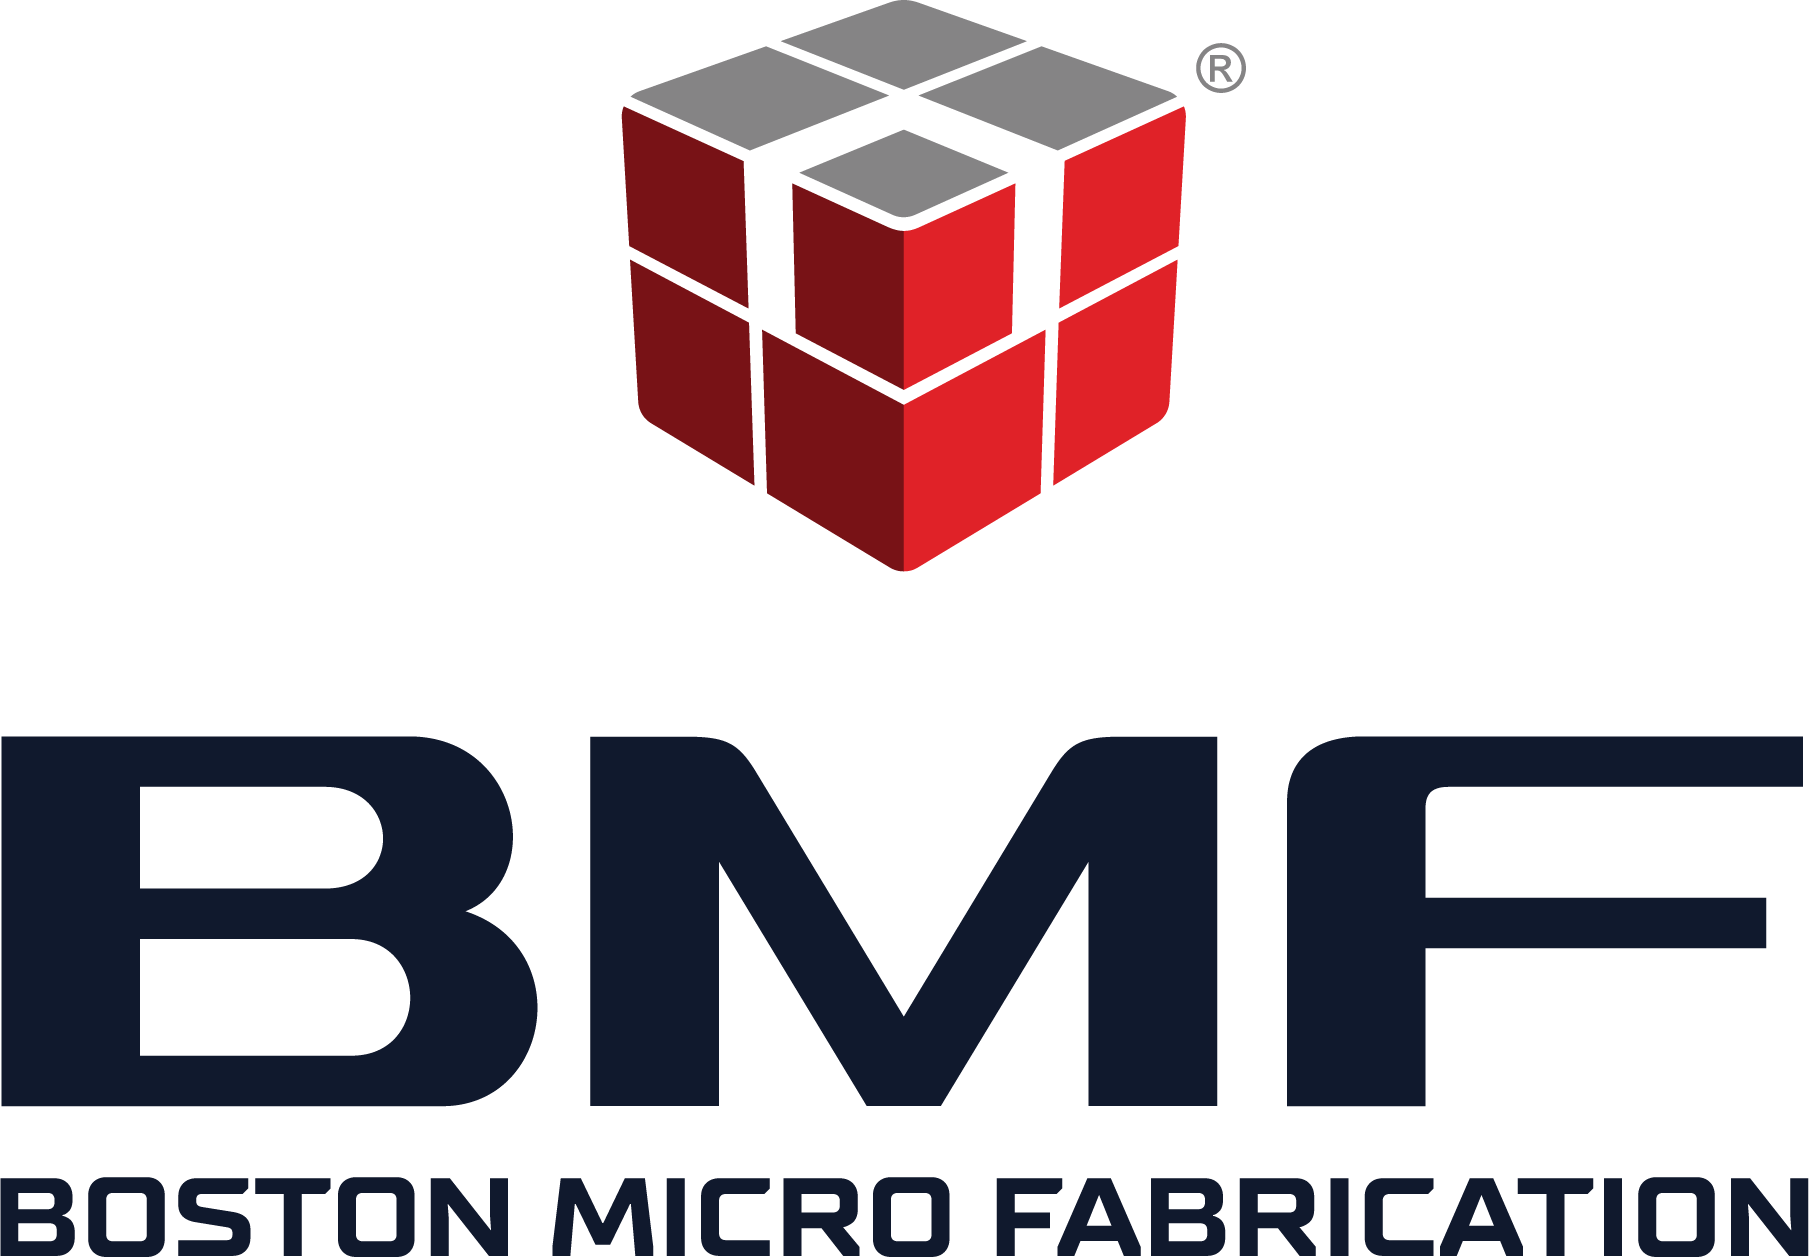 Boston Micro Fabrication - BMF